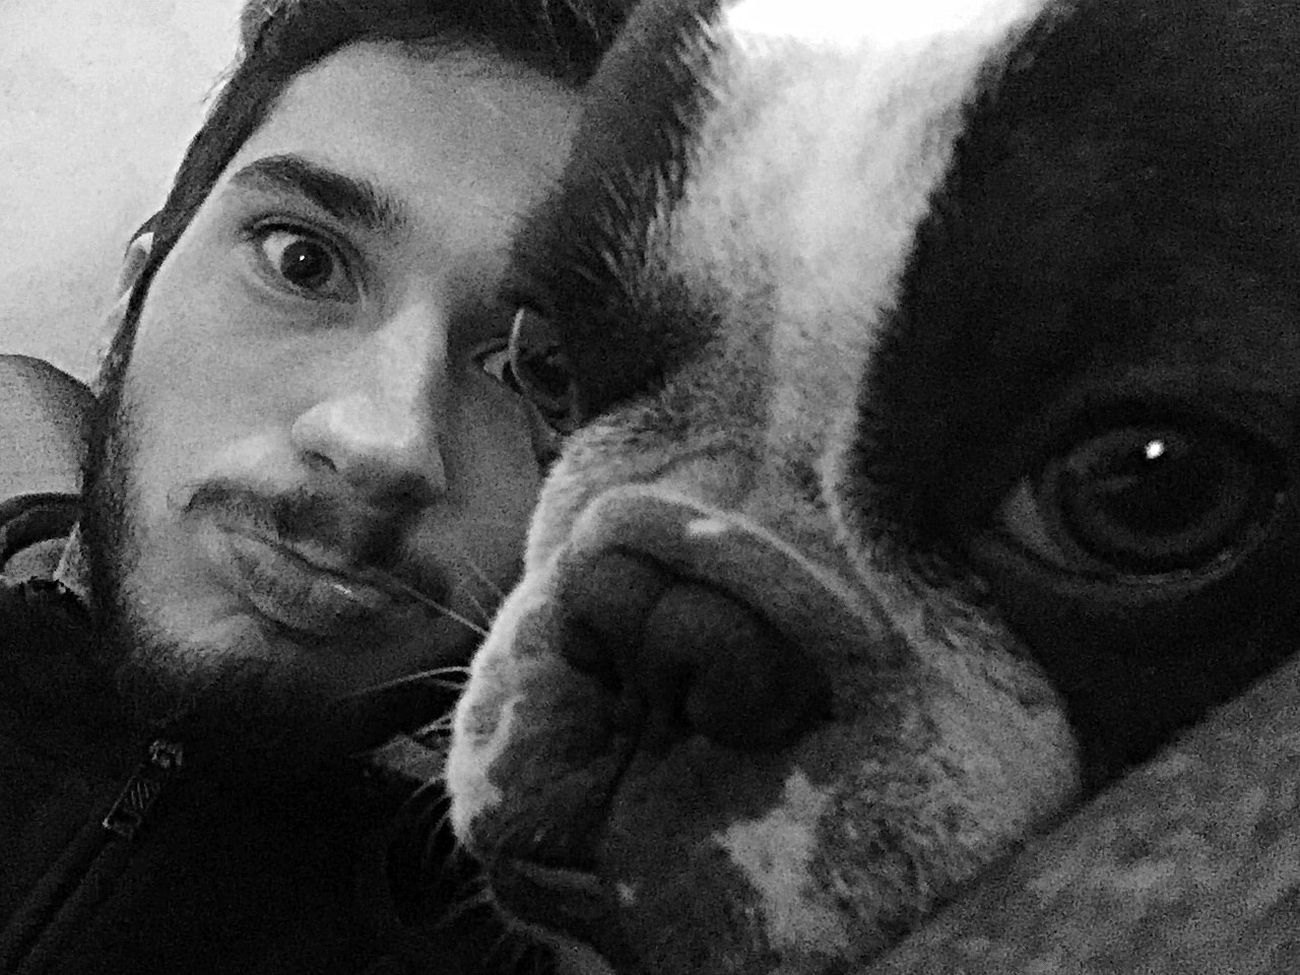 My dogfriend Lincoln ✌🏻️ Dog Bulldog Relaxing Good Times Goodvibes ForTheLoveOfPhotography Instamoment Picoftheday Eyem Gallery Eyemphotos Selfportrait Animals Selfie ✌ Enjoying Life Eyem Best Shots - Black + White Blackandwhite